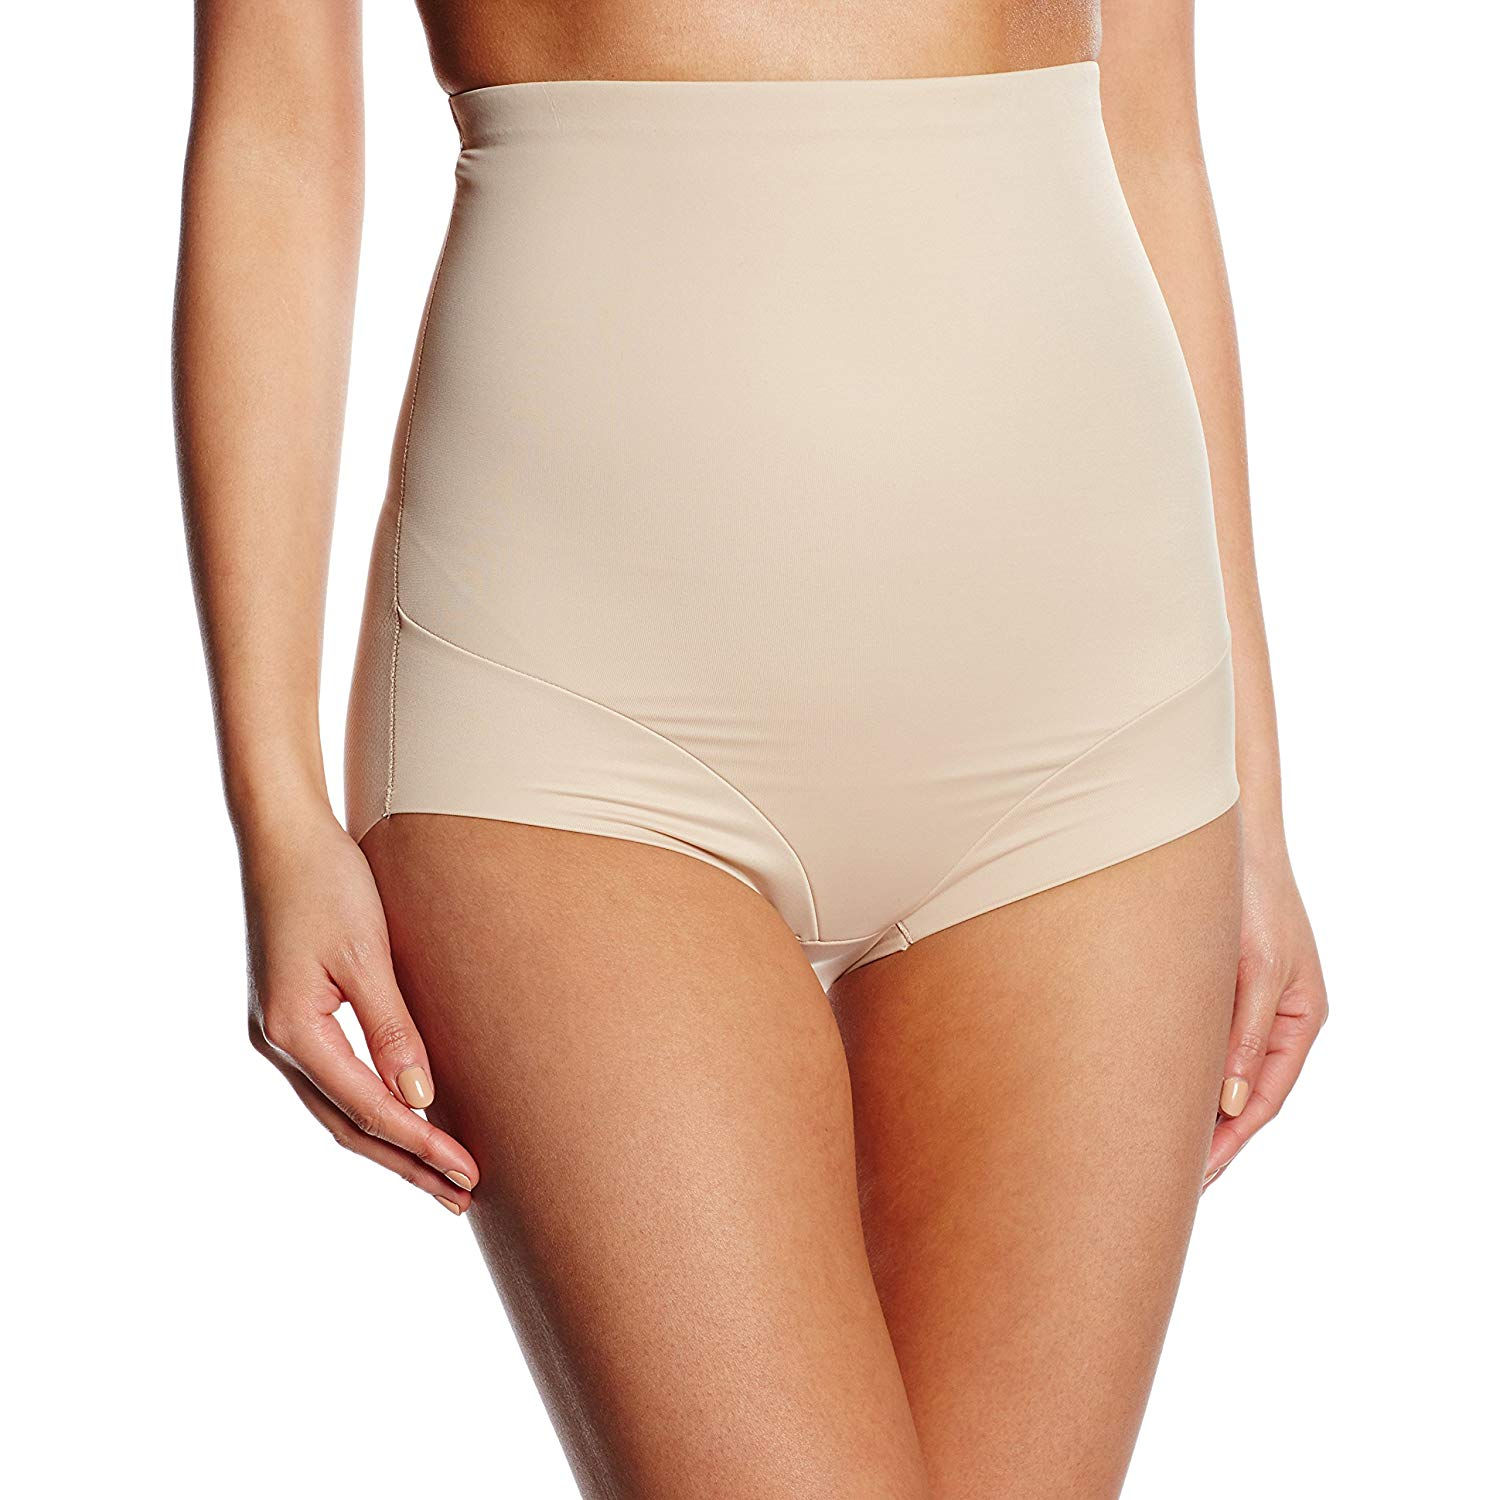 46893061db Get Quotations · Miraclesuit Shapewear Comfort Leg Nude Hi-Waist Brief 2805